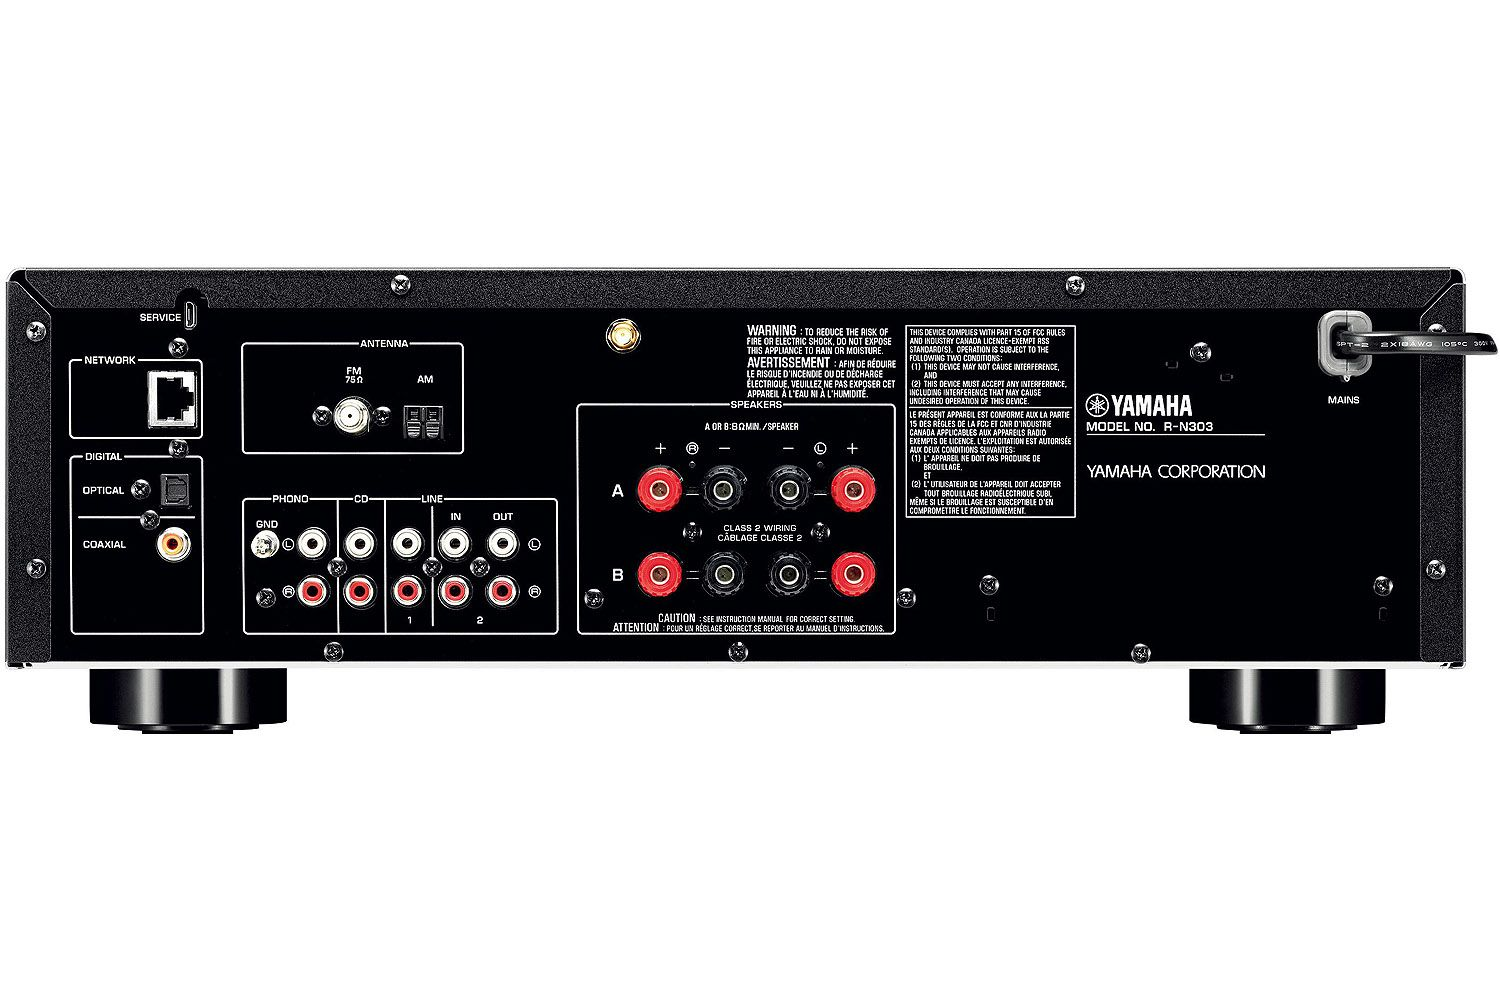 Yamaha Black Network Stereo Receiver